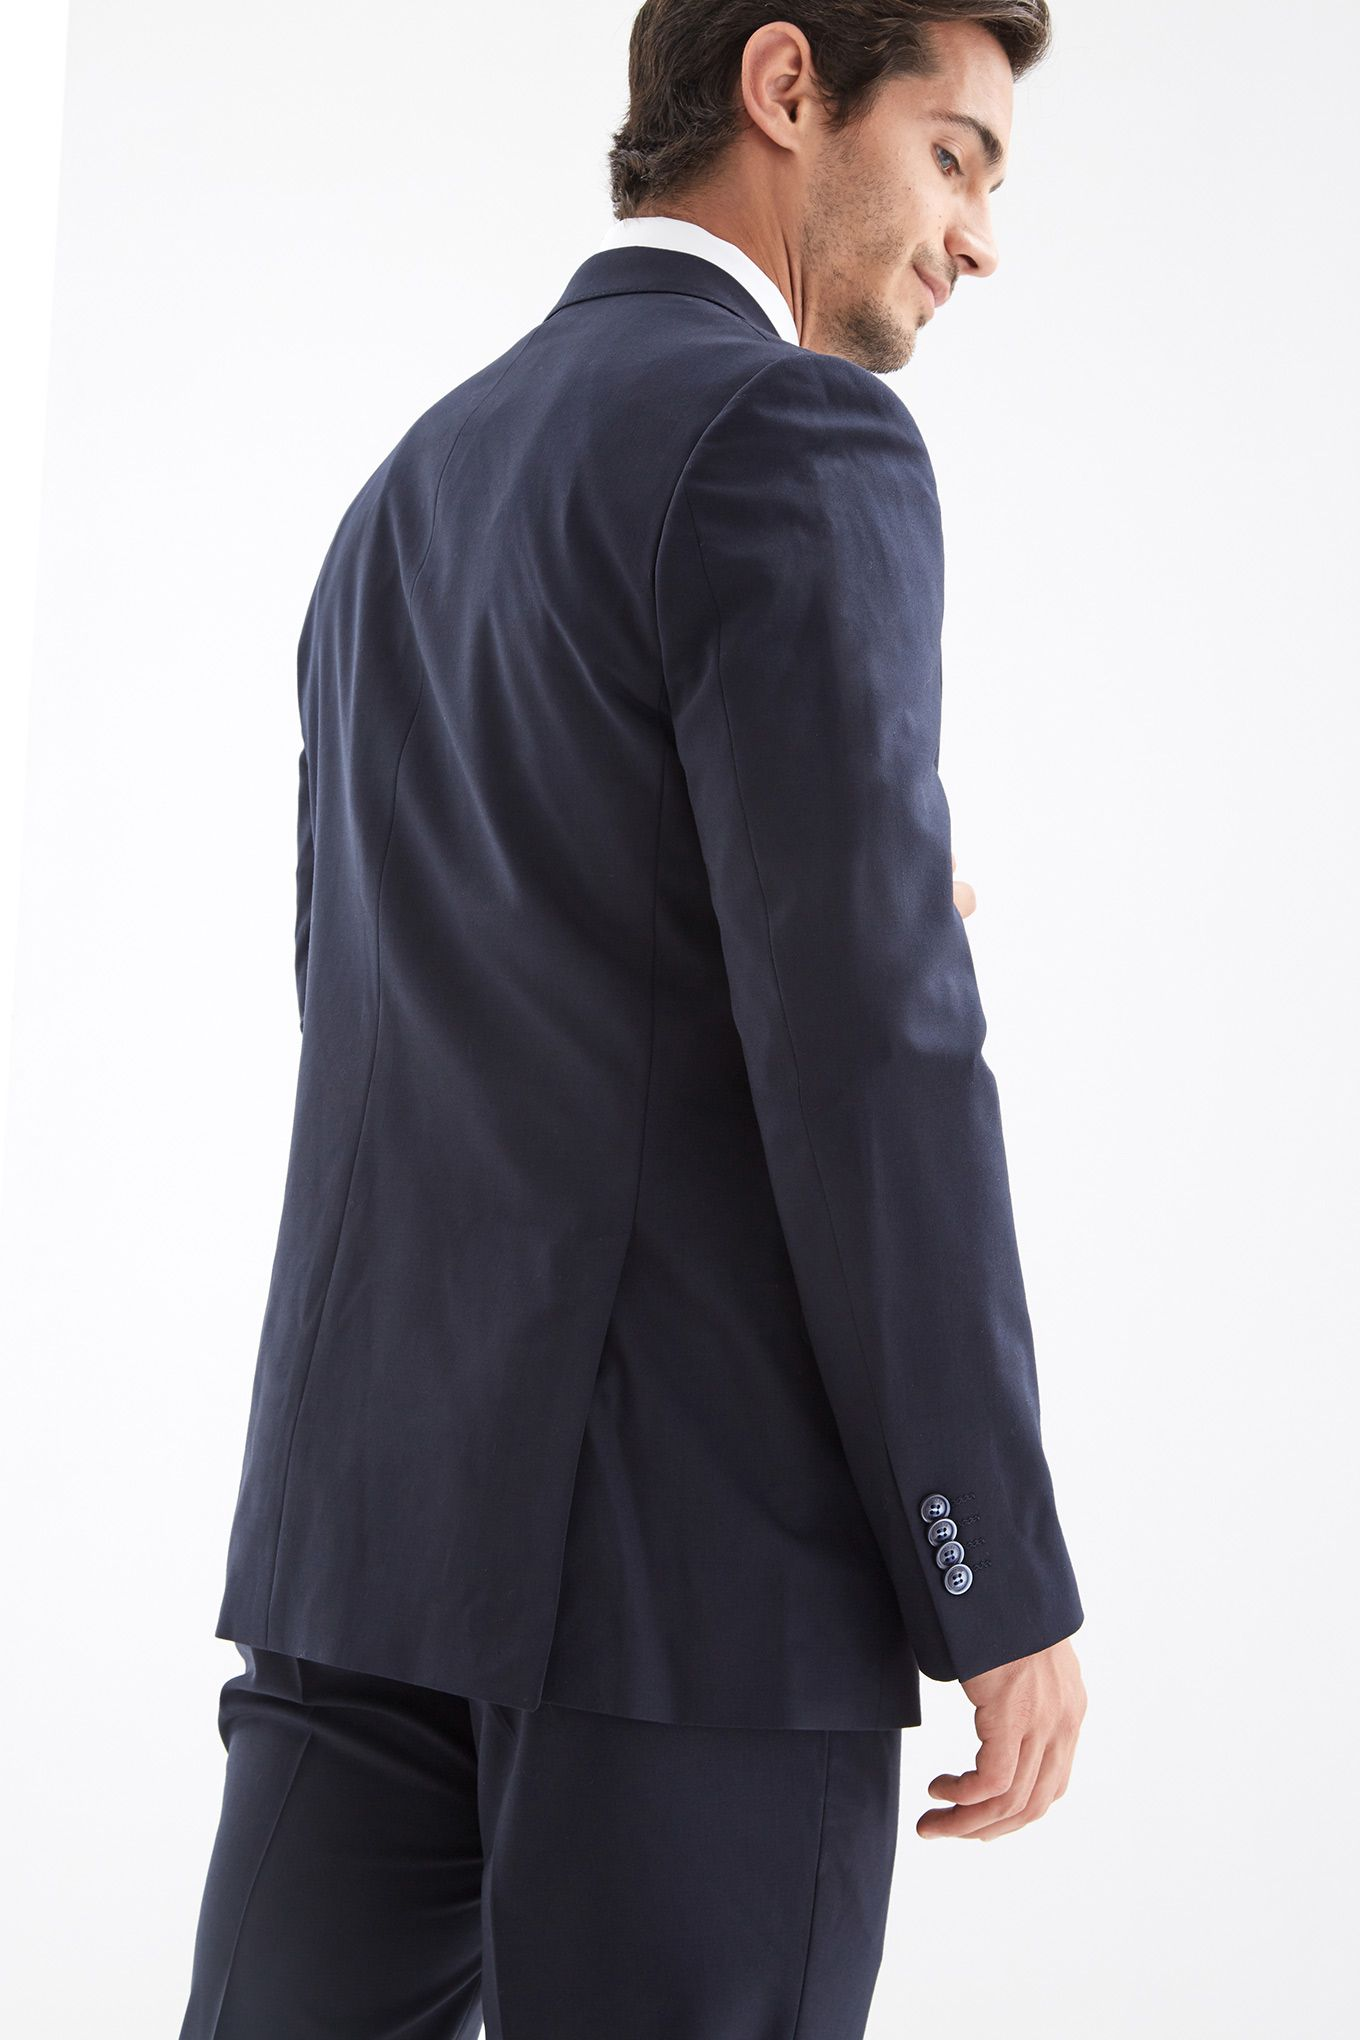 Men s Double-breasted Suit